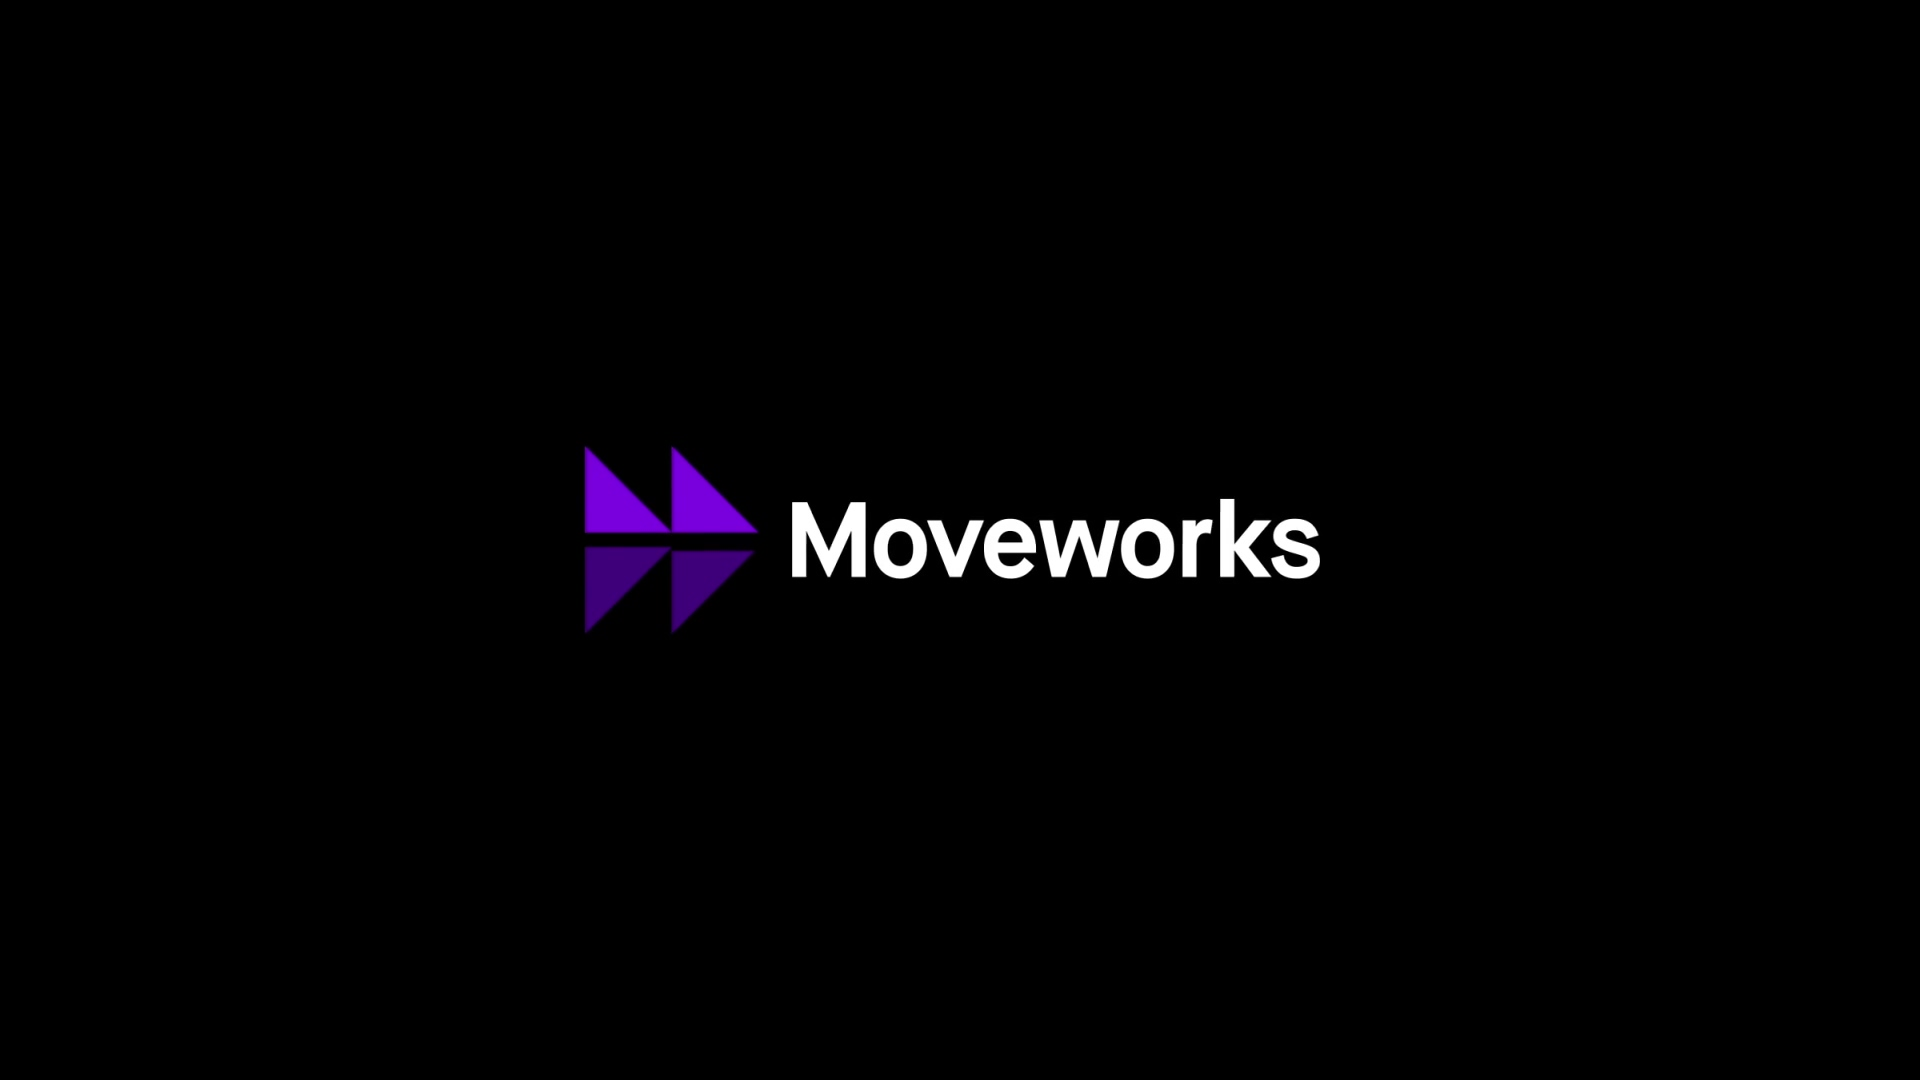 Moveworks - Brand Video